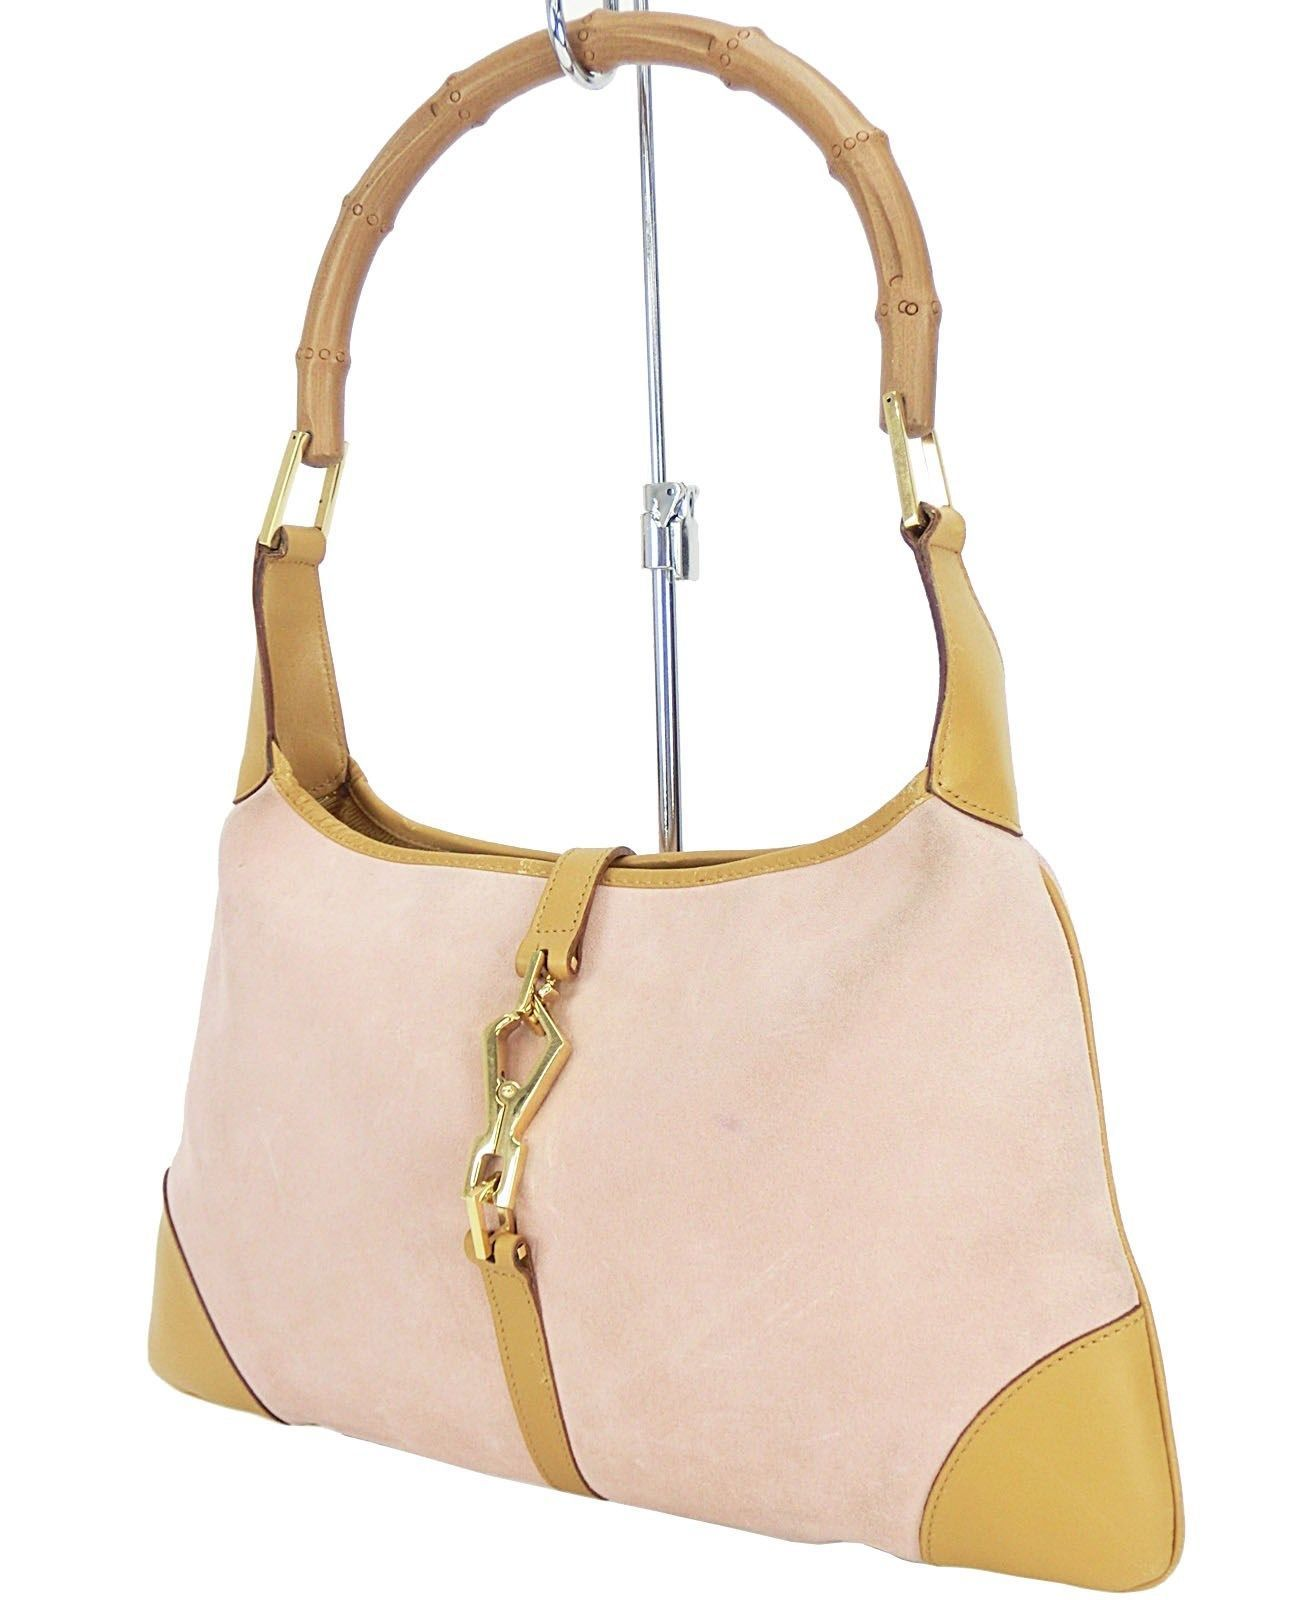 c5c8b64fe18 Auth Gucci Jackie O Pink and Beige Suede and Bamboo Handle Hand Bag Purse  11579